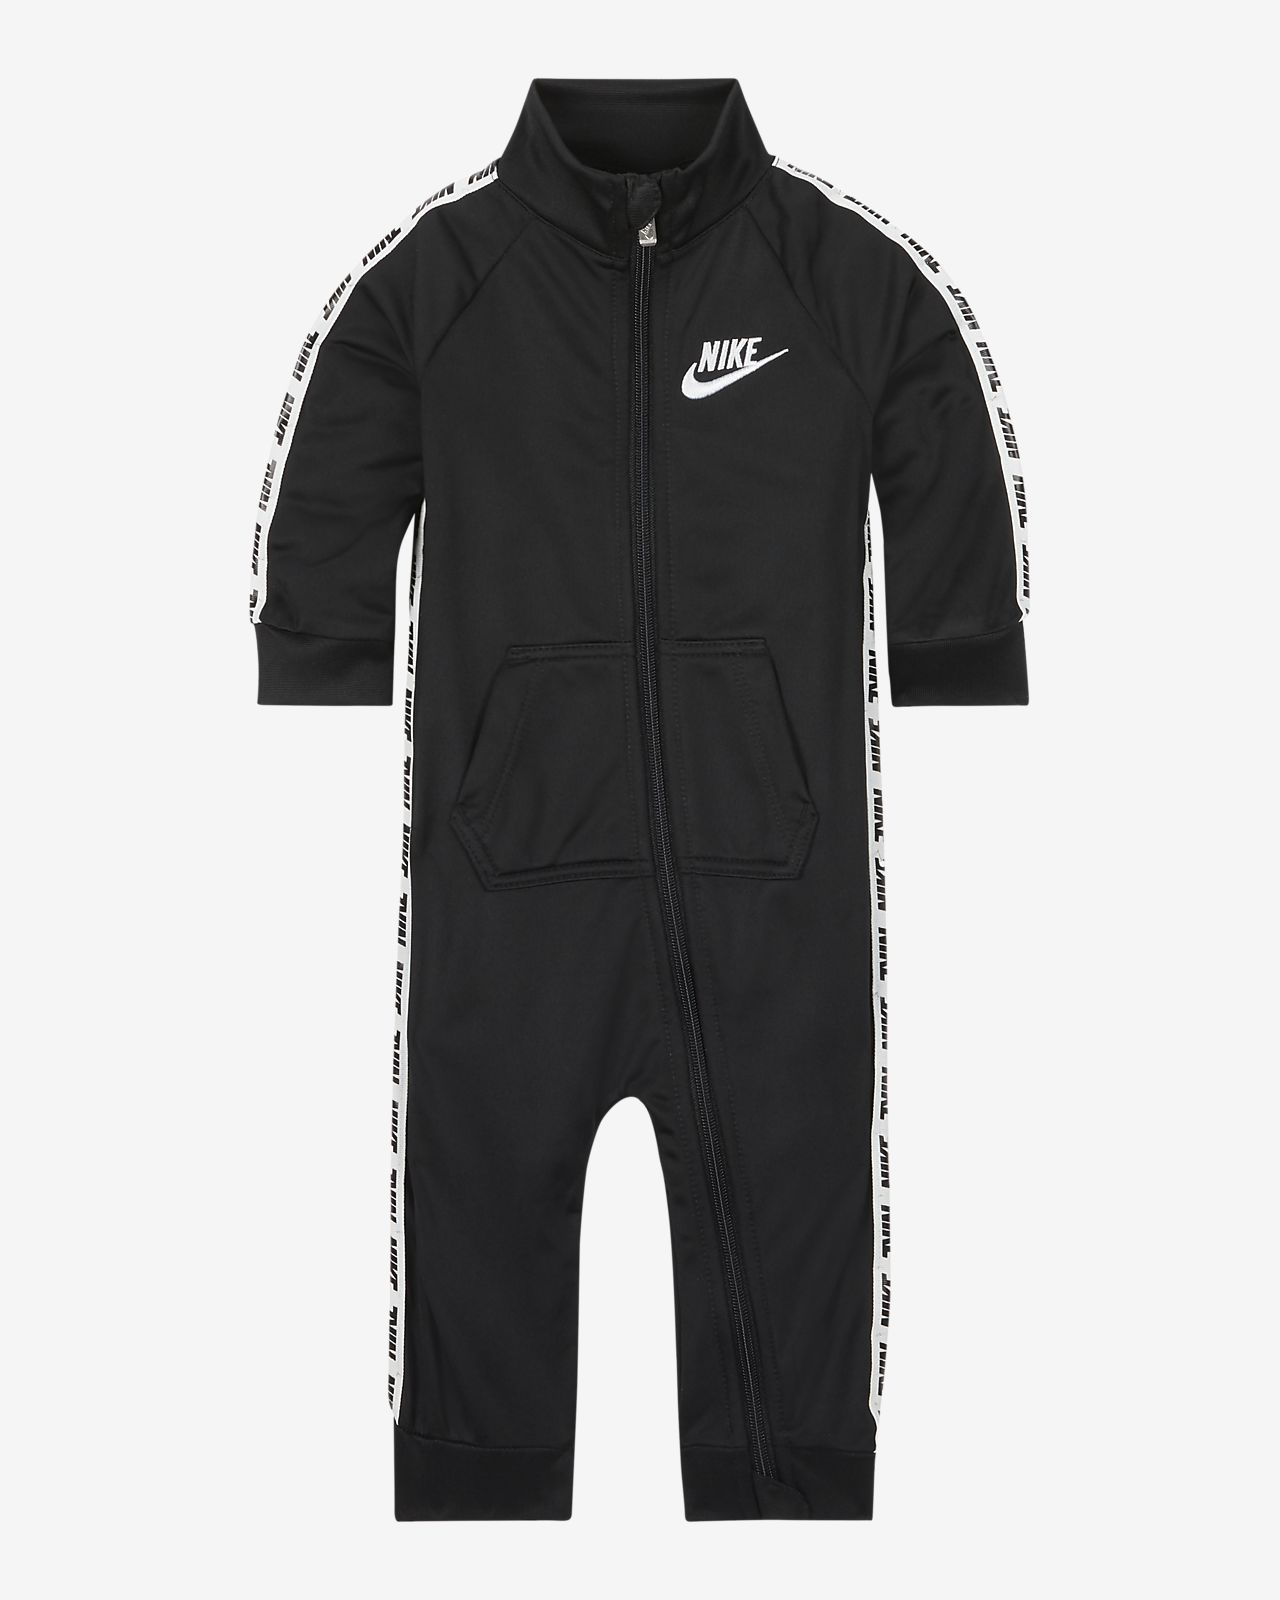 Nike Sportswear Baby (0-9M) Long-Sleeve Coverall